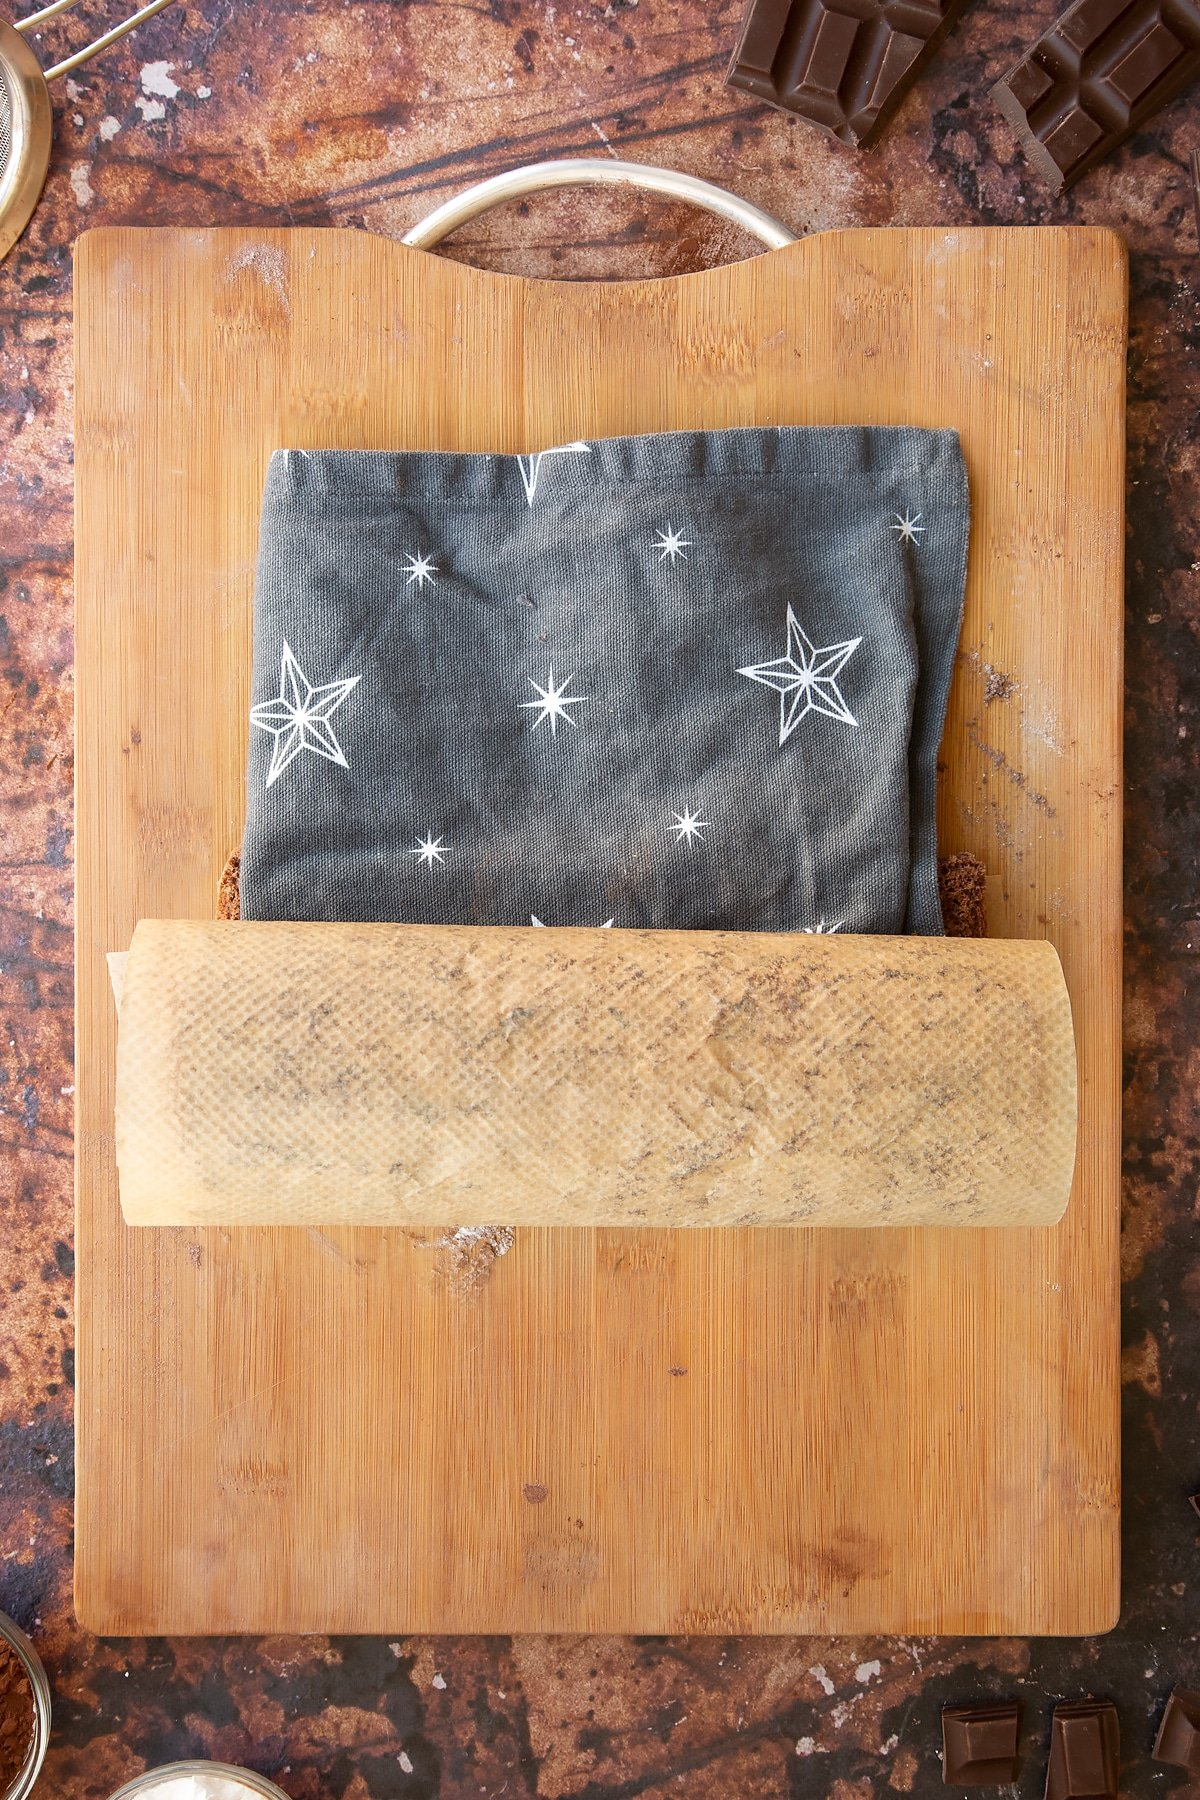 A chocolate sponge rolled with a tea towel on a wooden board and baking paper dusted with cocoa and icing sugar.